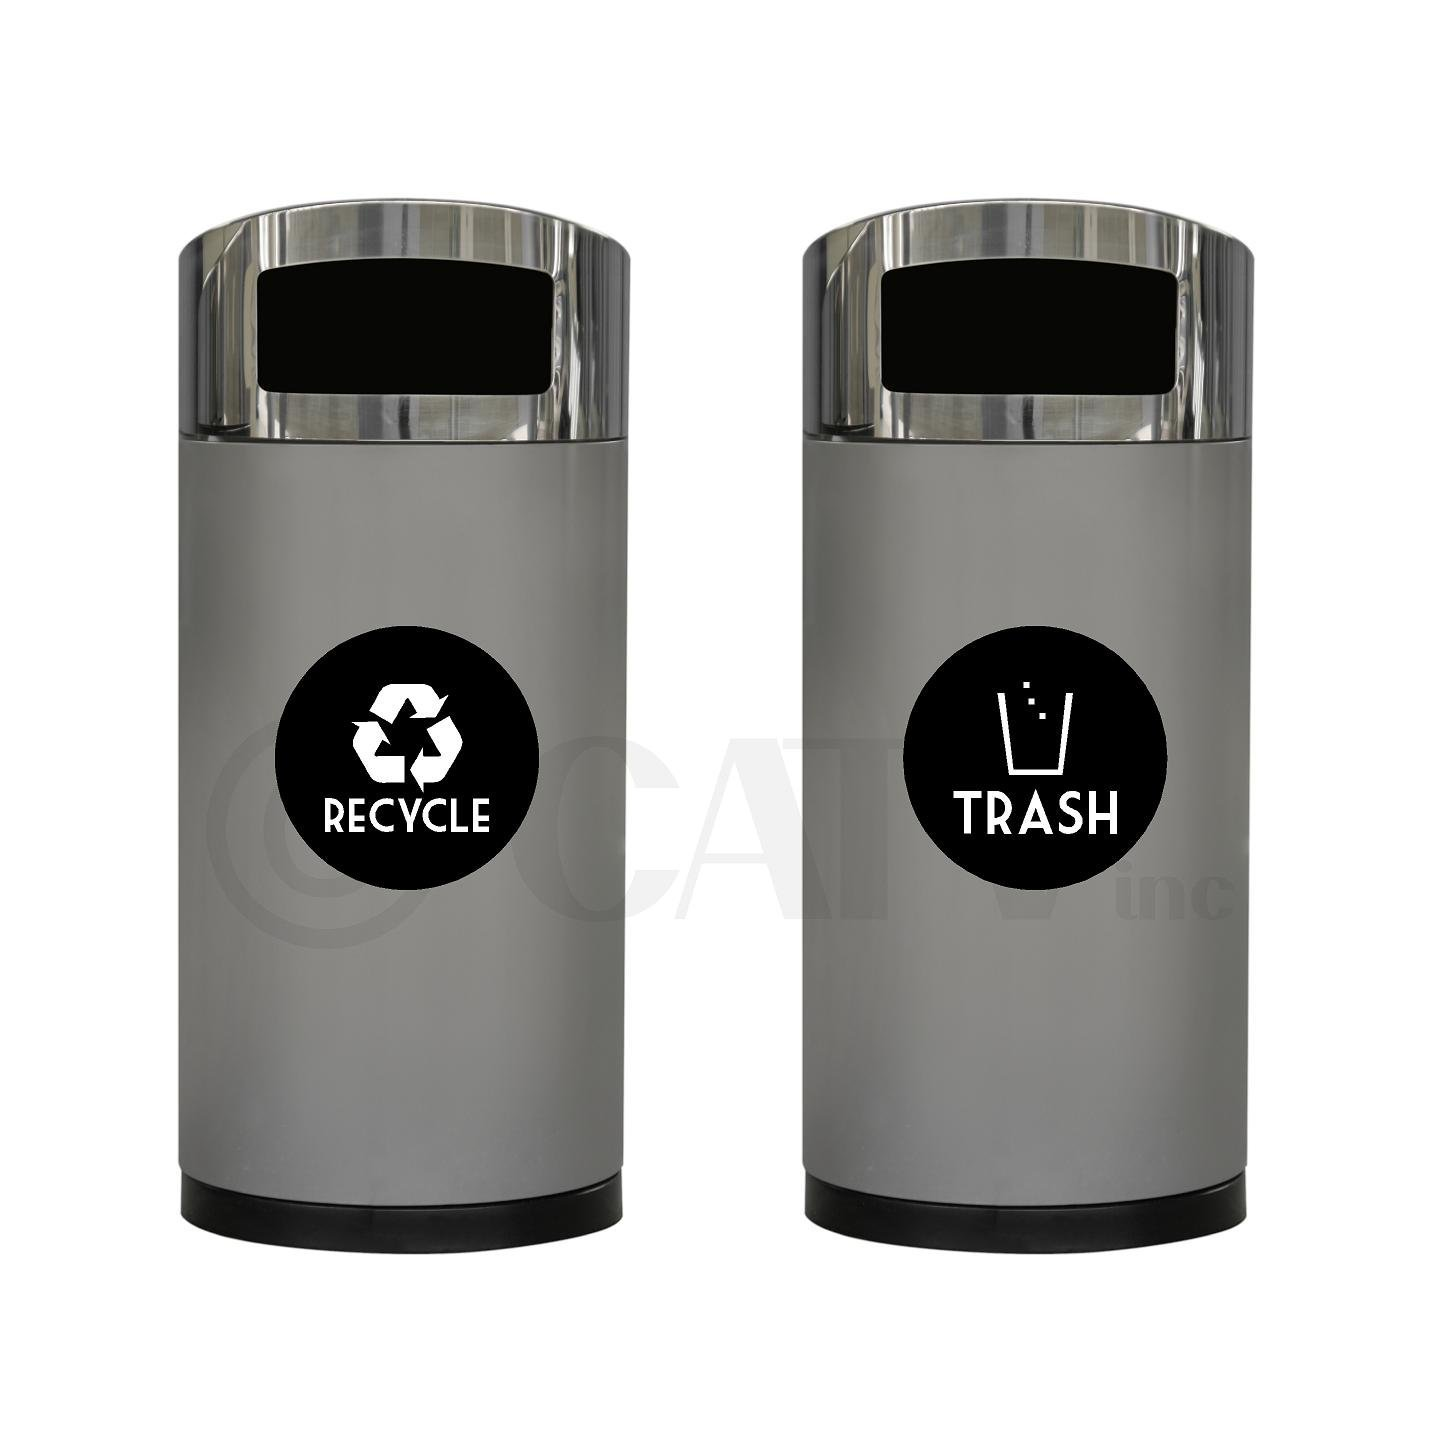 4 x 4, White Recycle and Trash Vinyl Lettering Decal Sticker